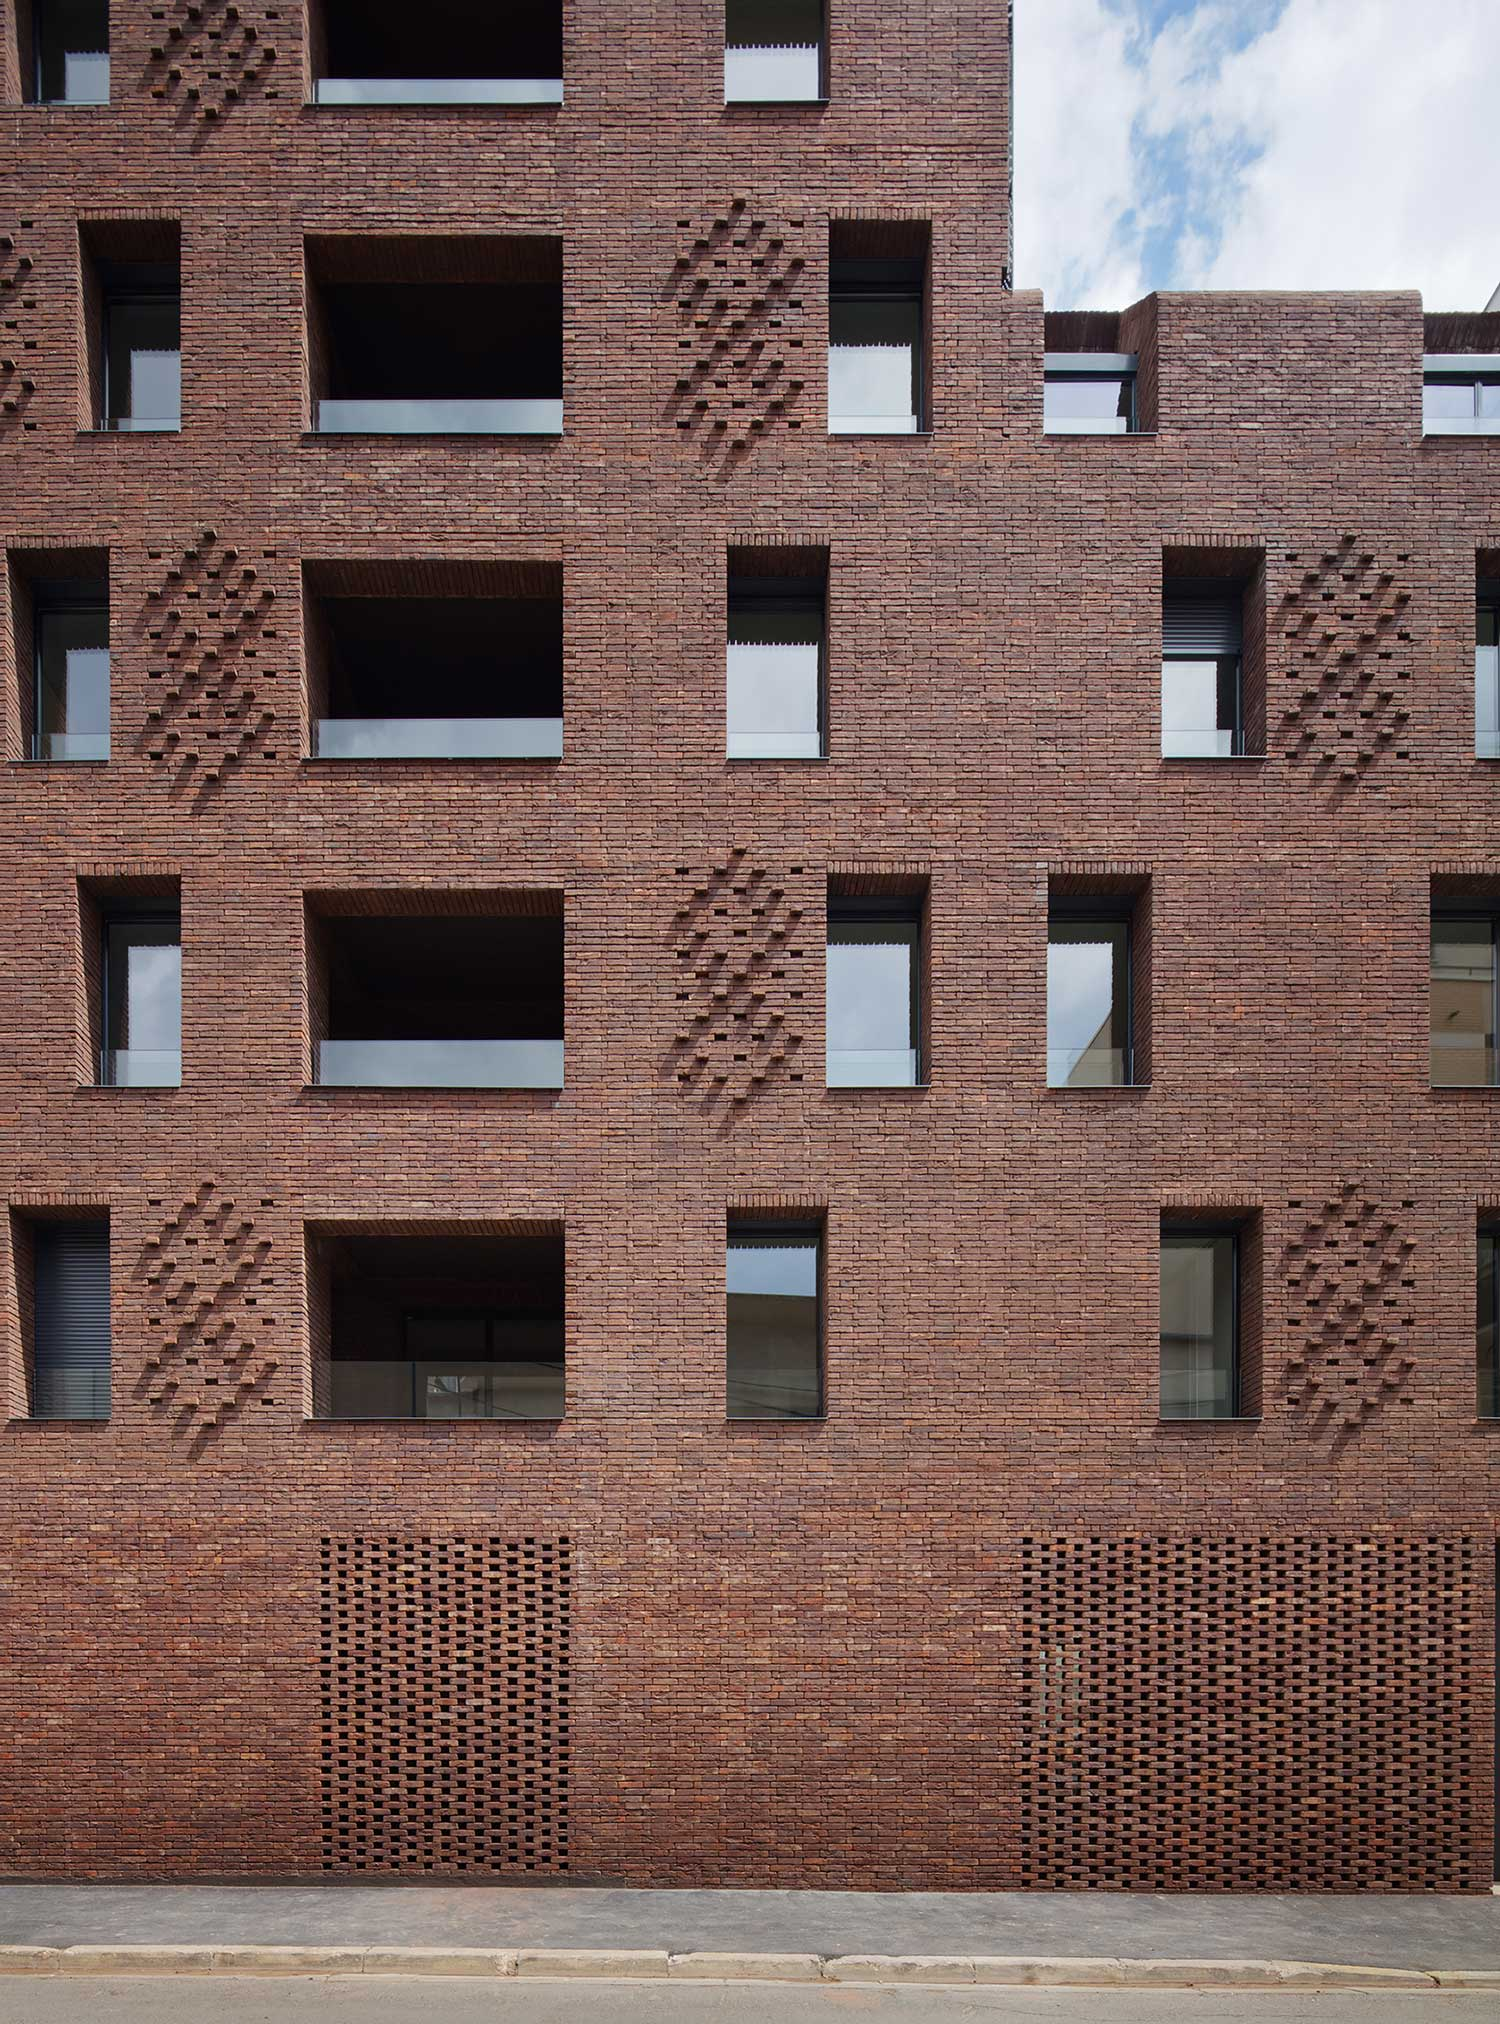 38 Housing Units by Avenier Cornejo Architectes | Yellowtrace